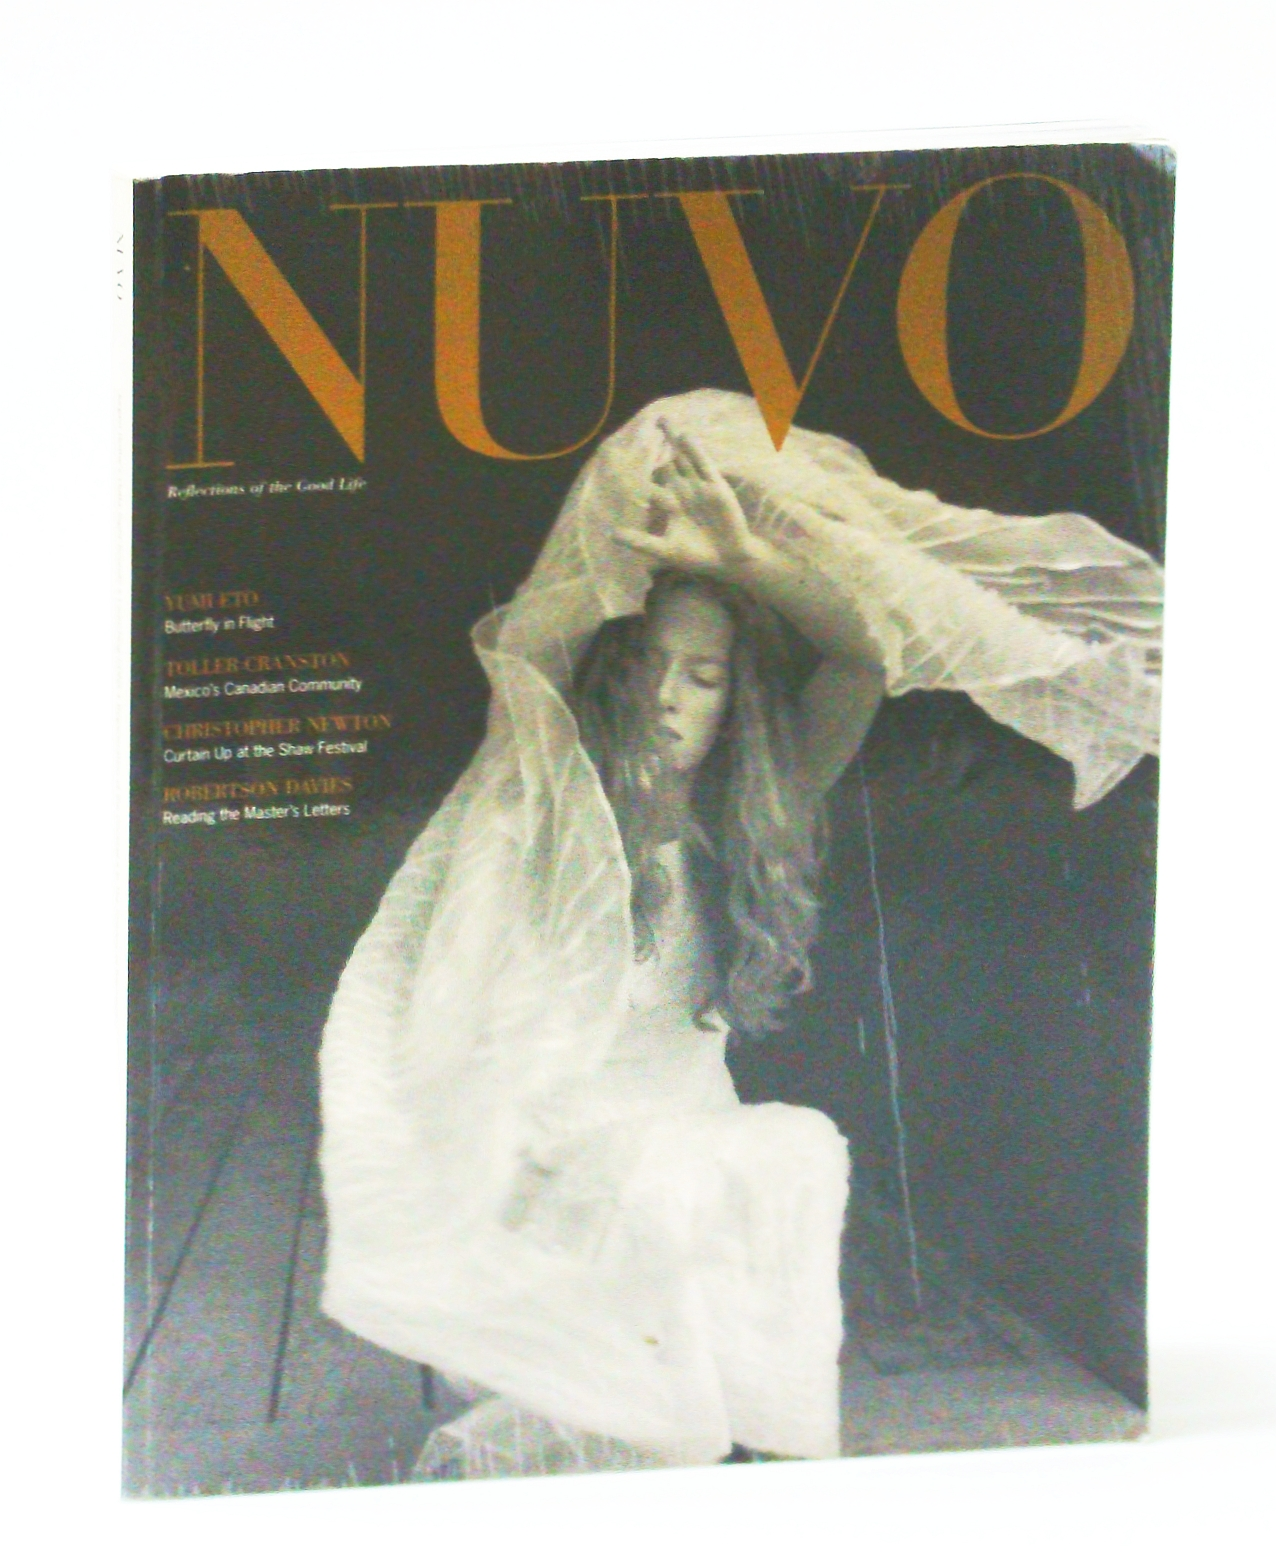 Image for Nuvo Magazine - Reflections of the Good Life, Spring 2000, Volume 3, No. 1 - Yumi Eto